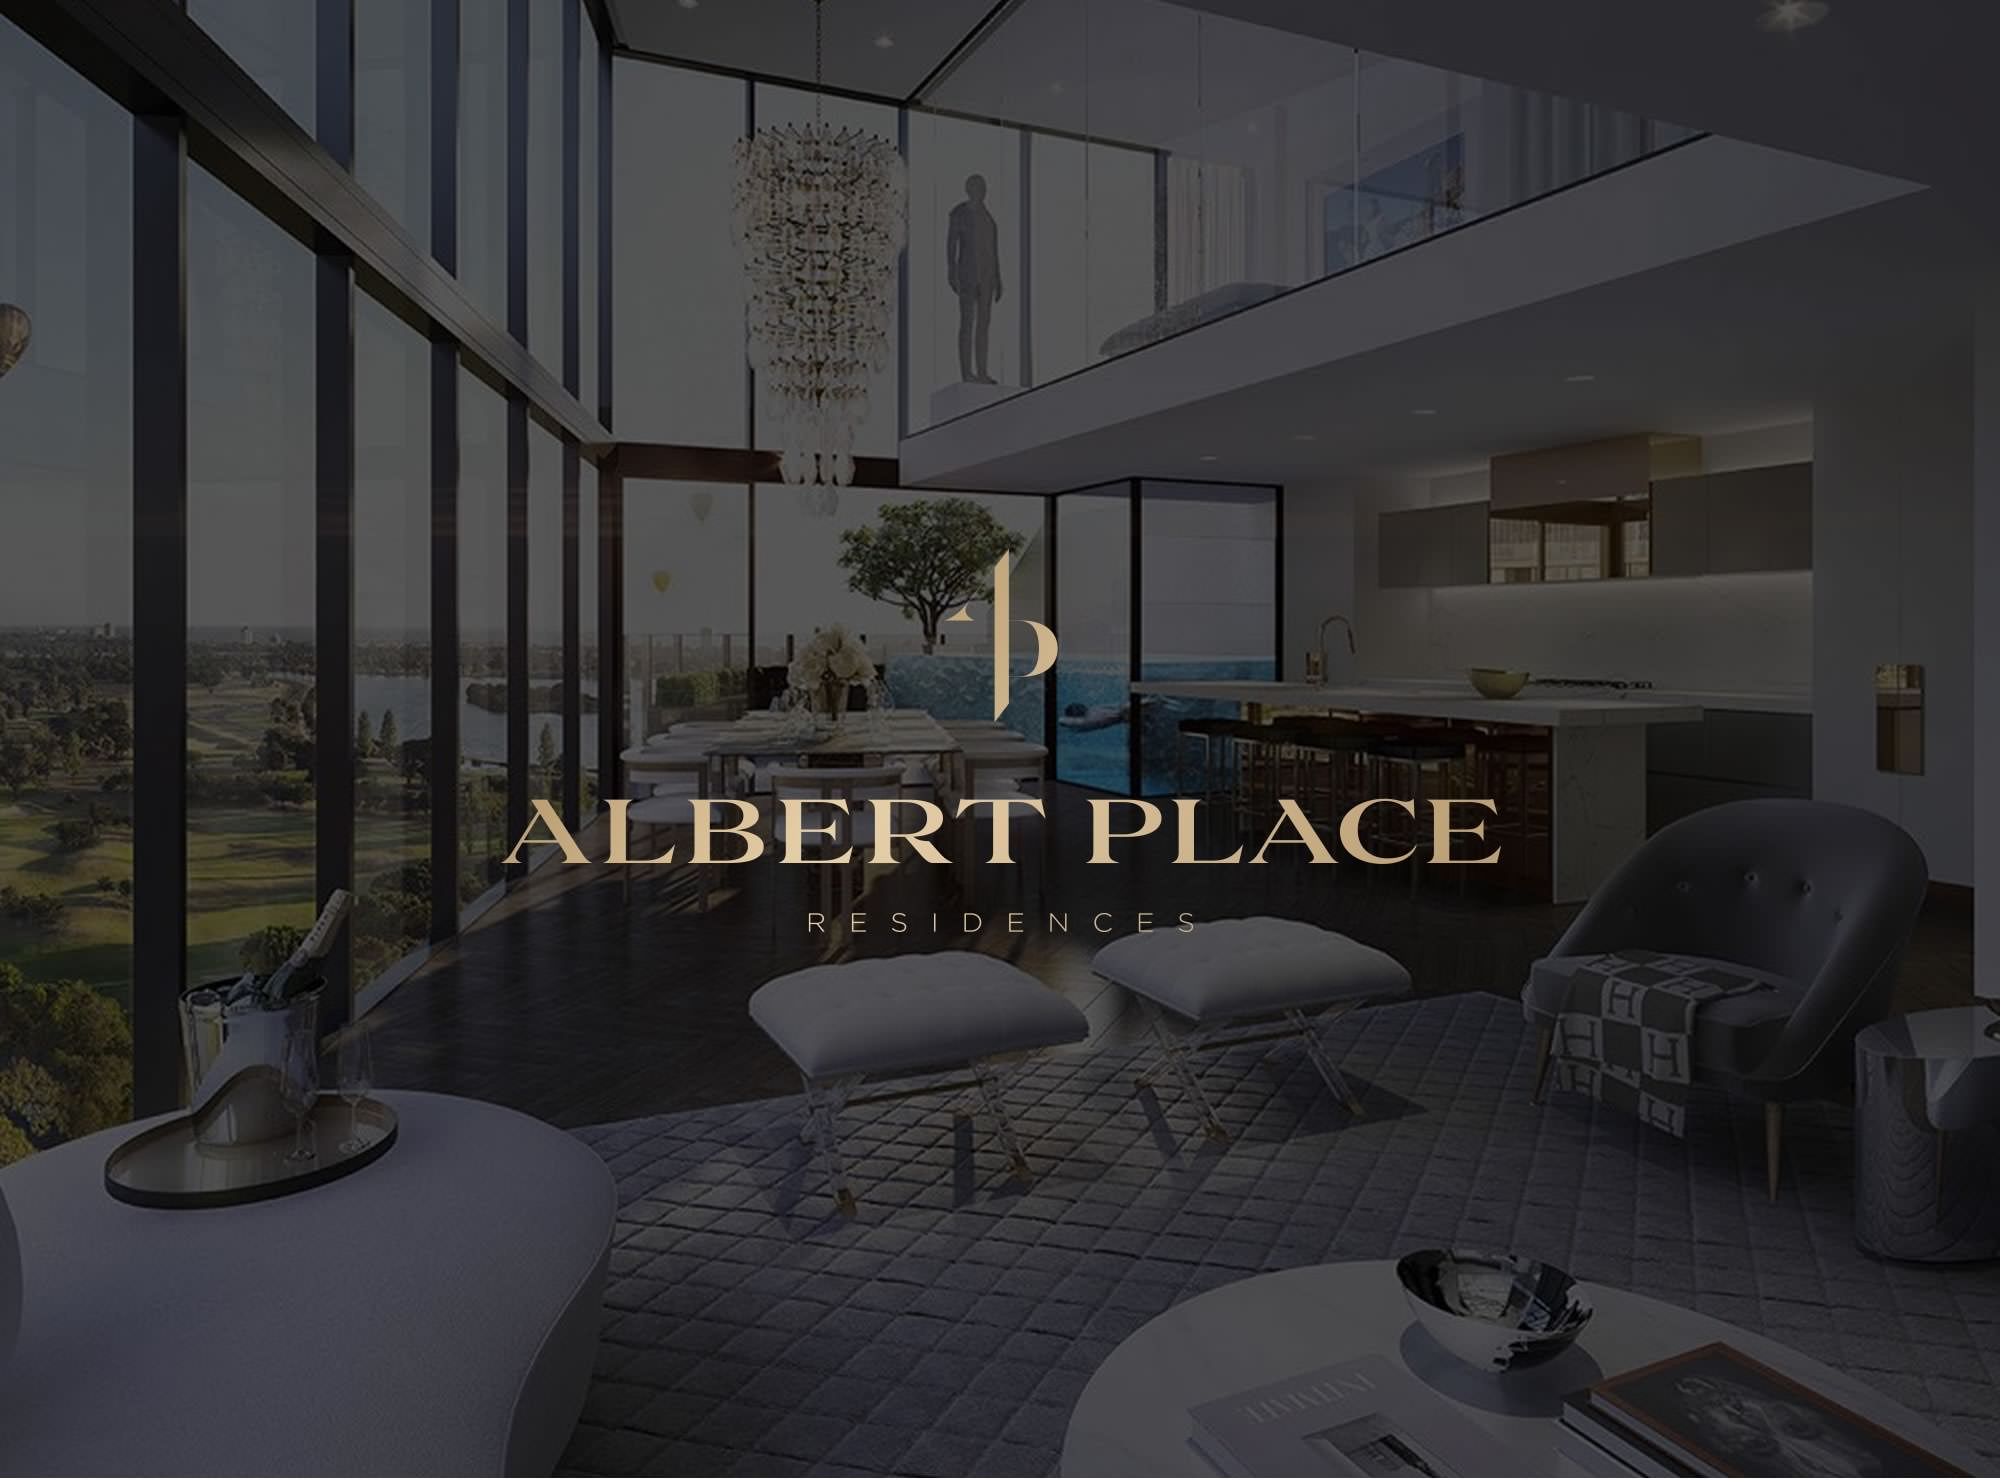 Albert Place Residences